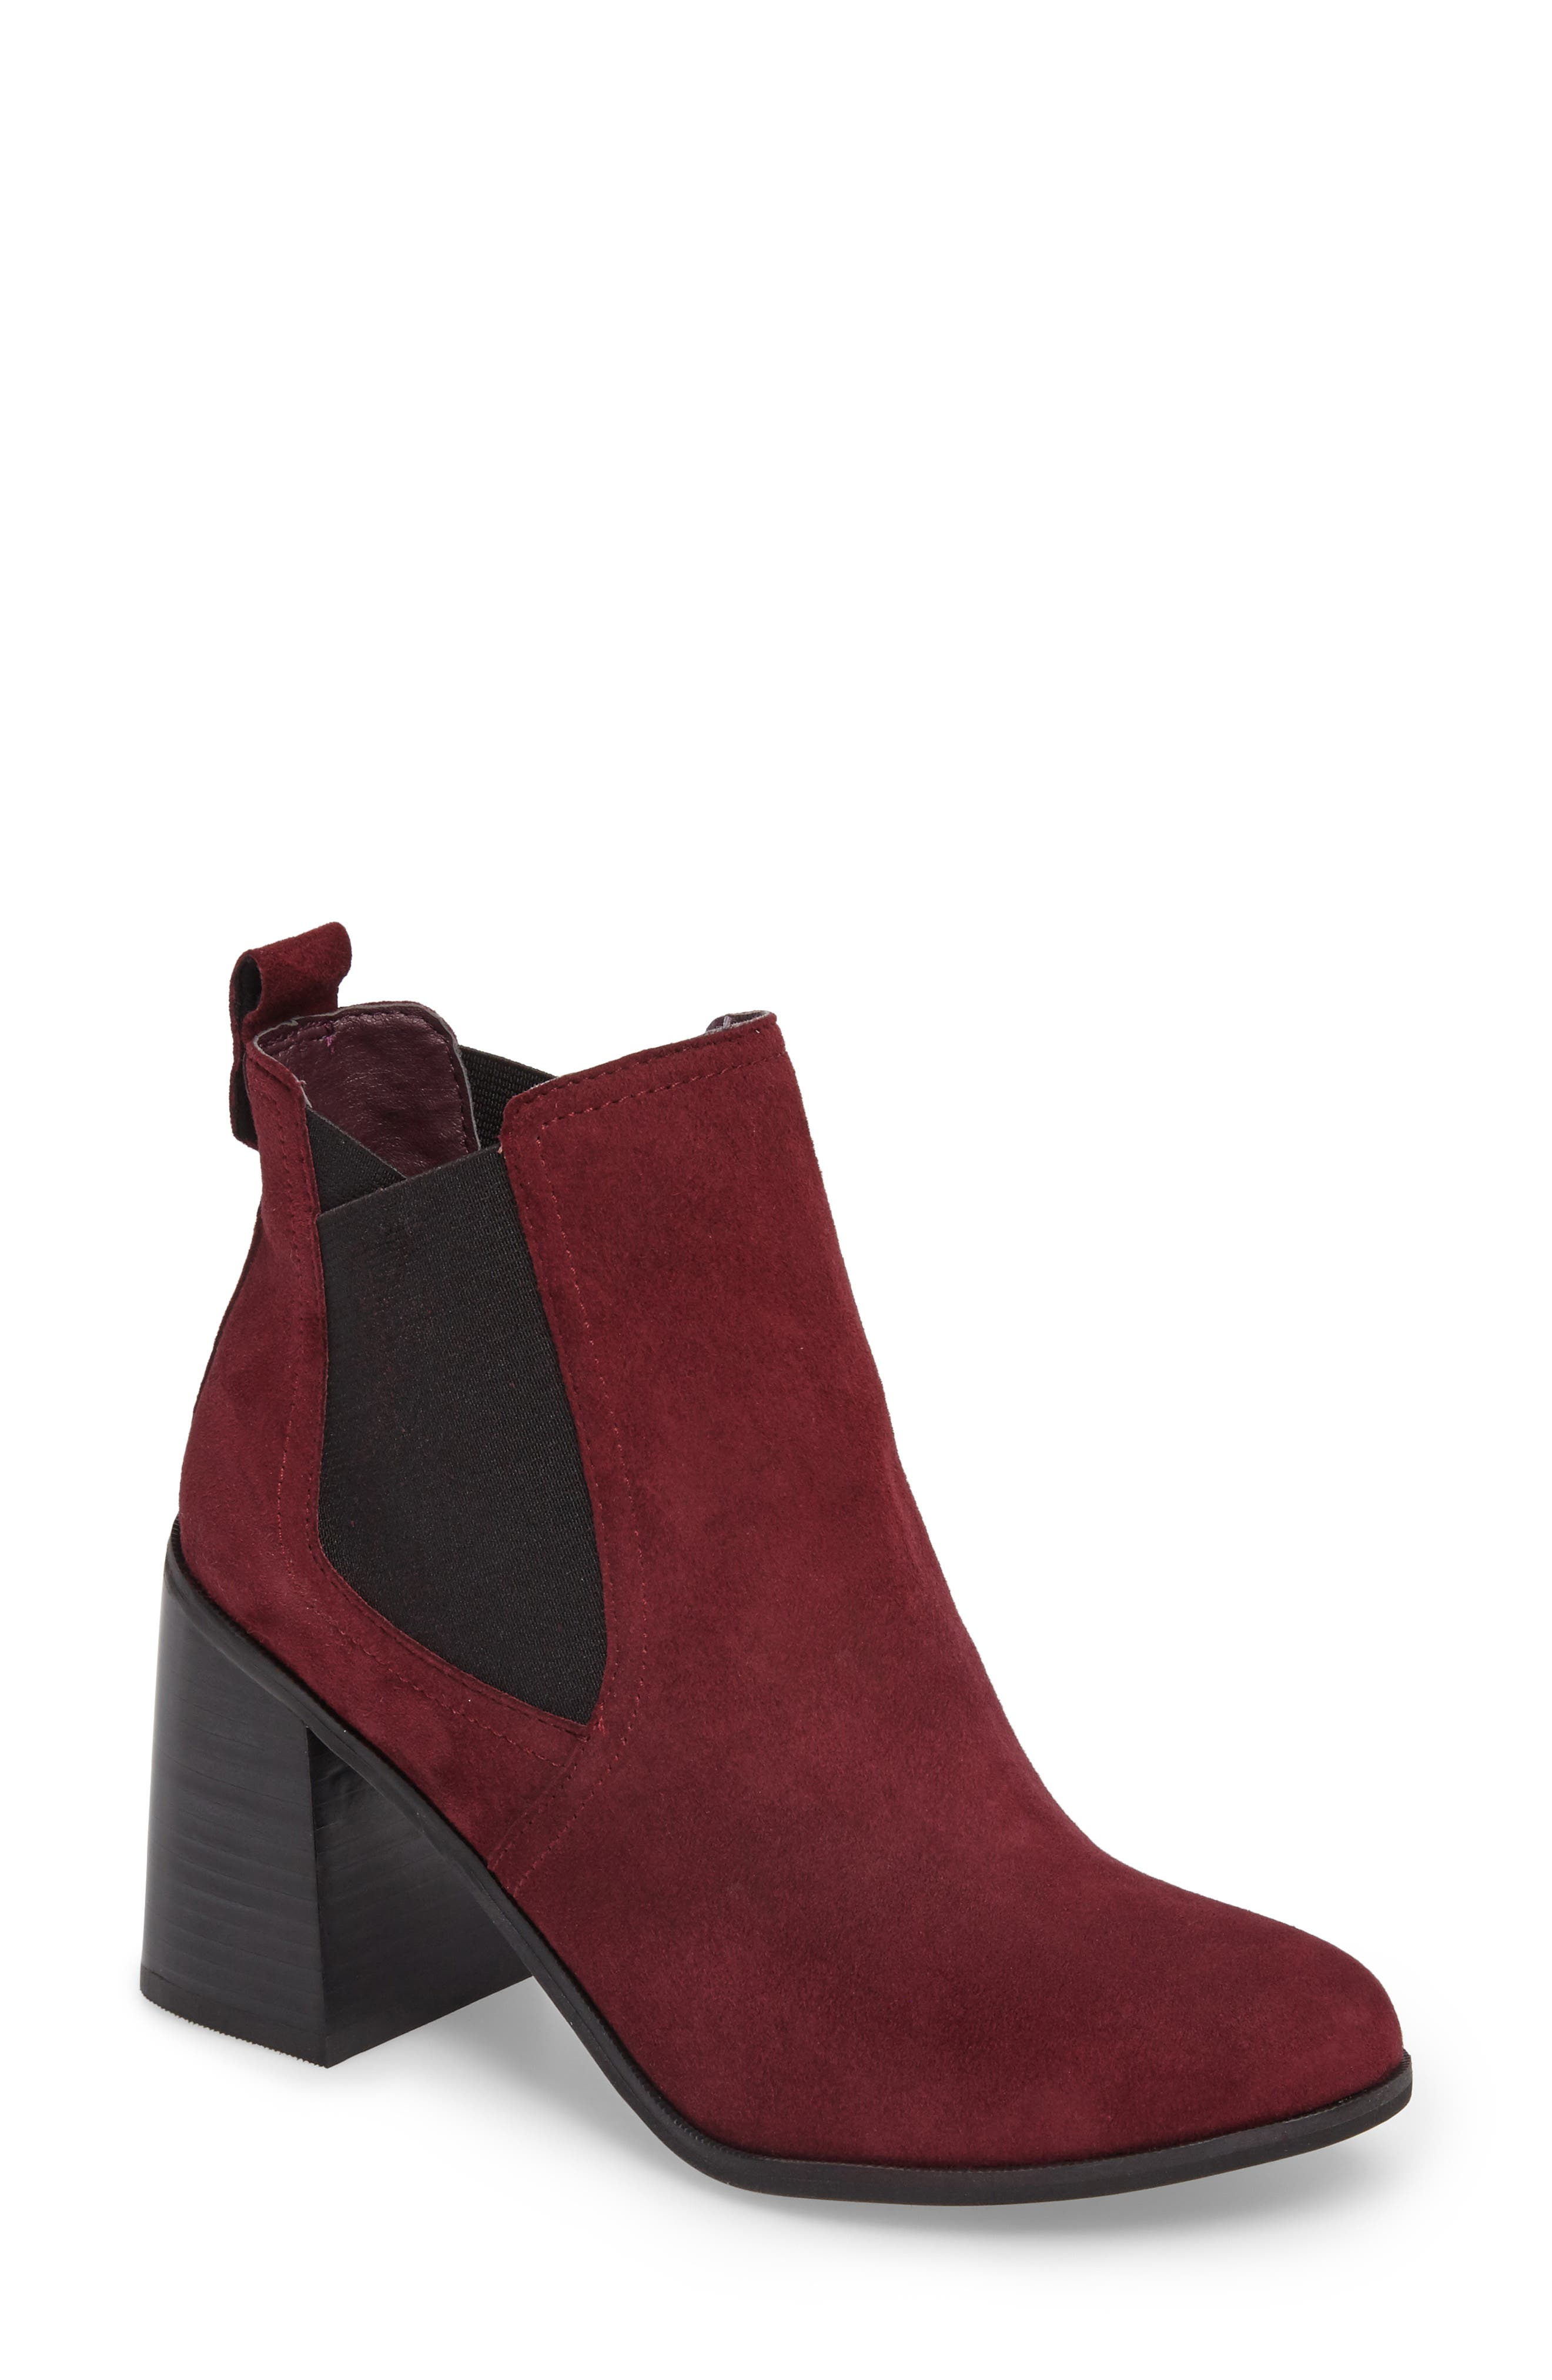 Quinn Flared Heel Chelsea Bootie,                             Main thumbnail 5, color,